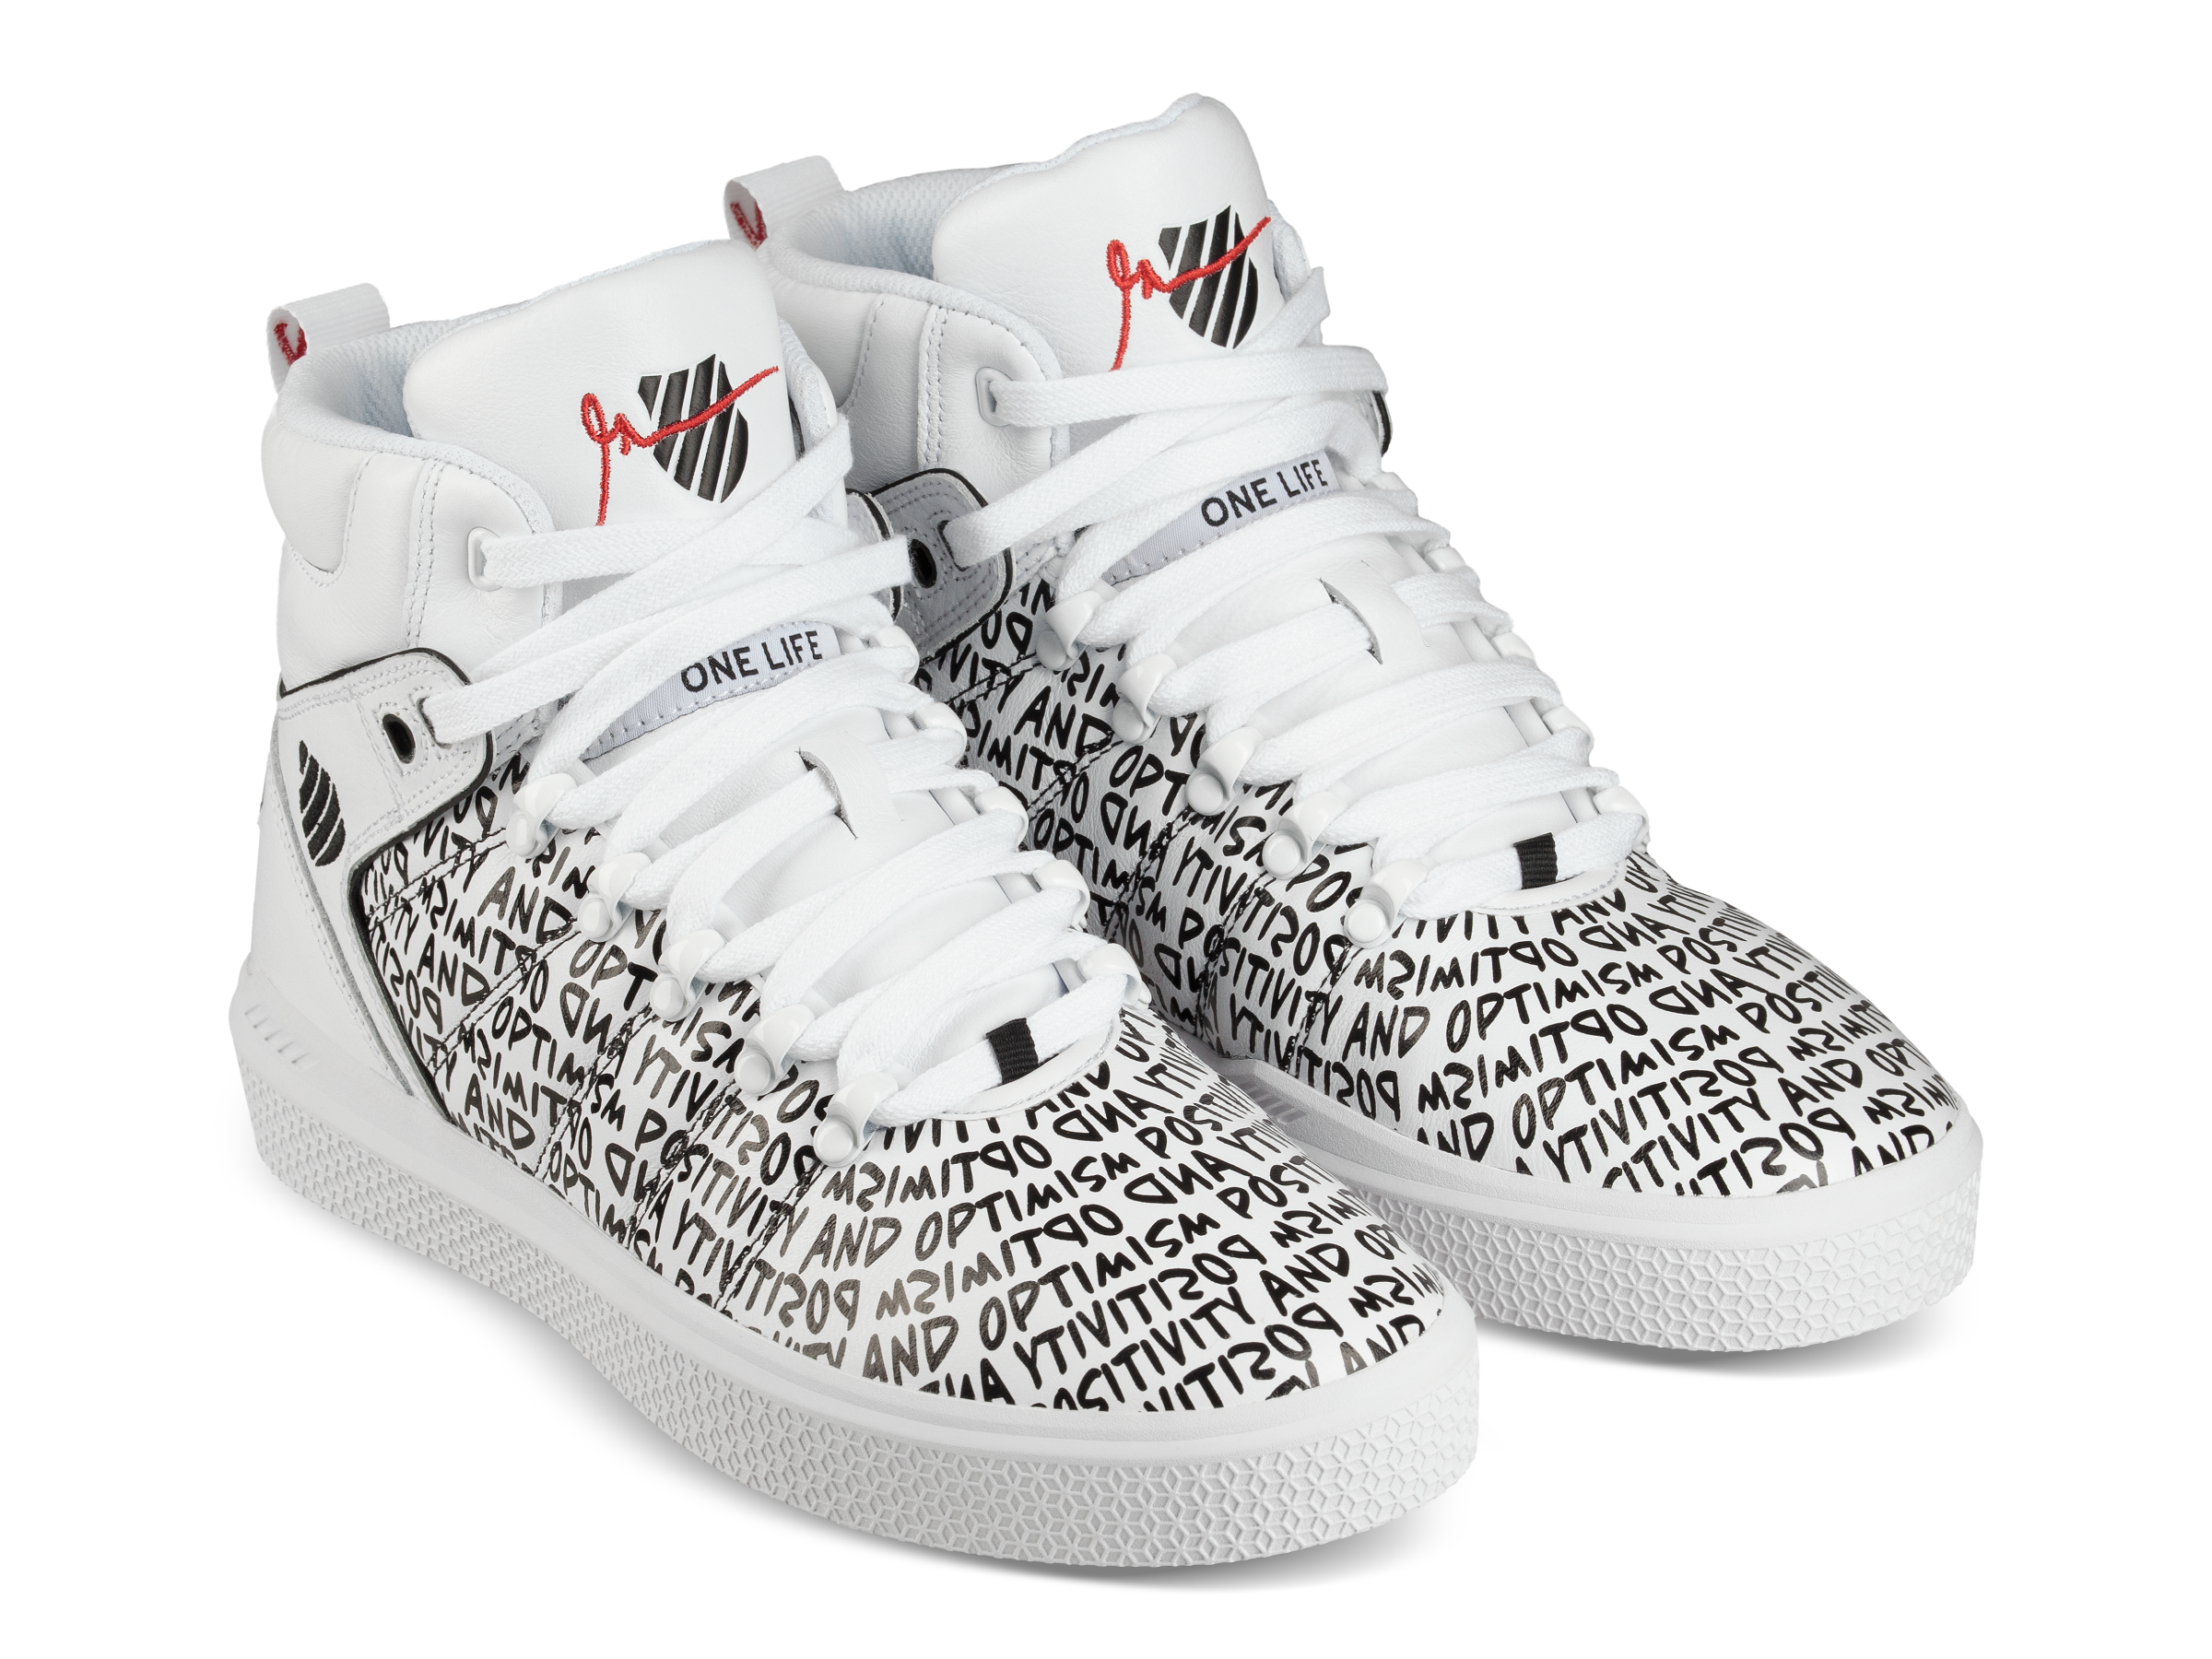 Gary Vee And K-Swiss Partner With Ntwrk